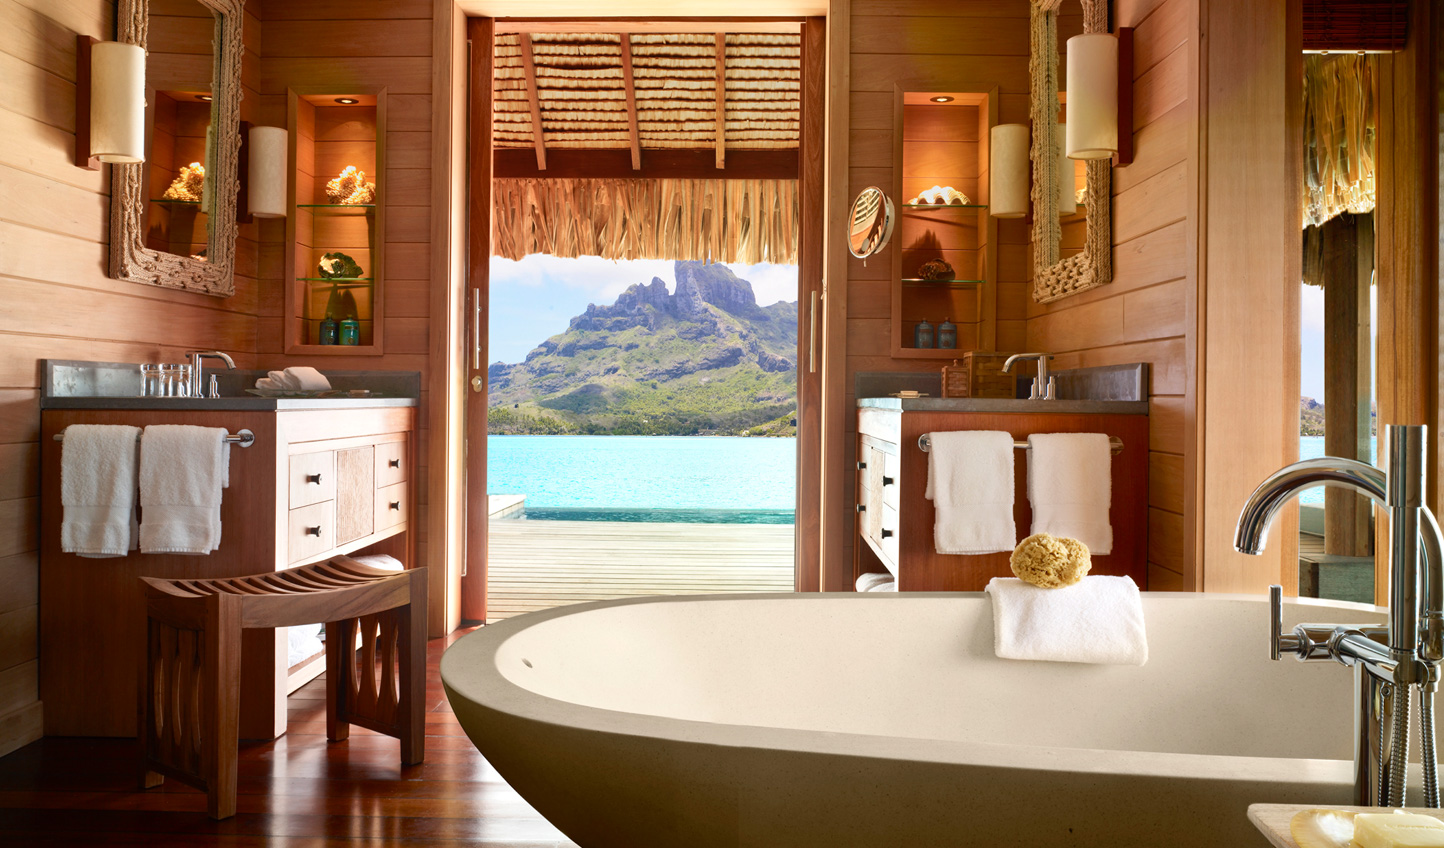 Sink into the tub and soak up views of Mount Otemanu